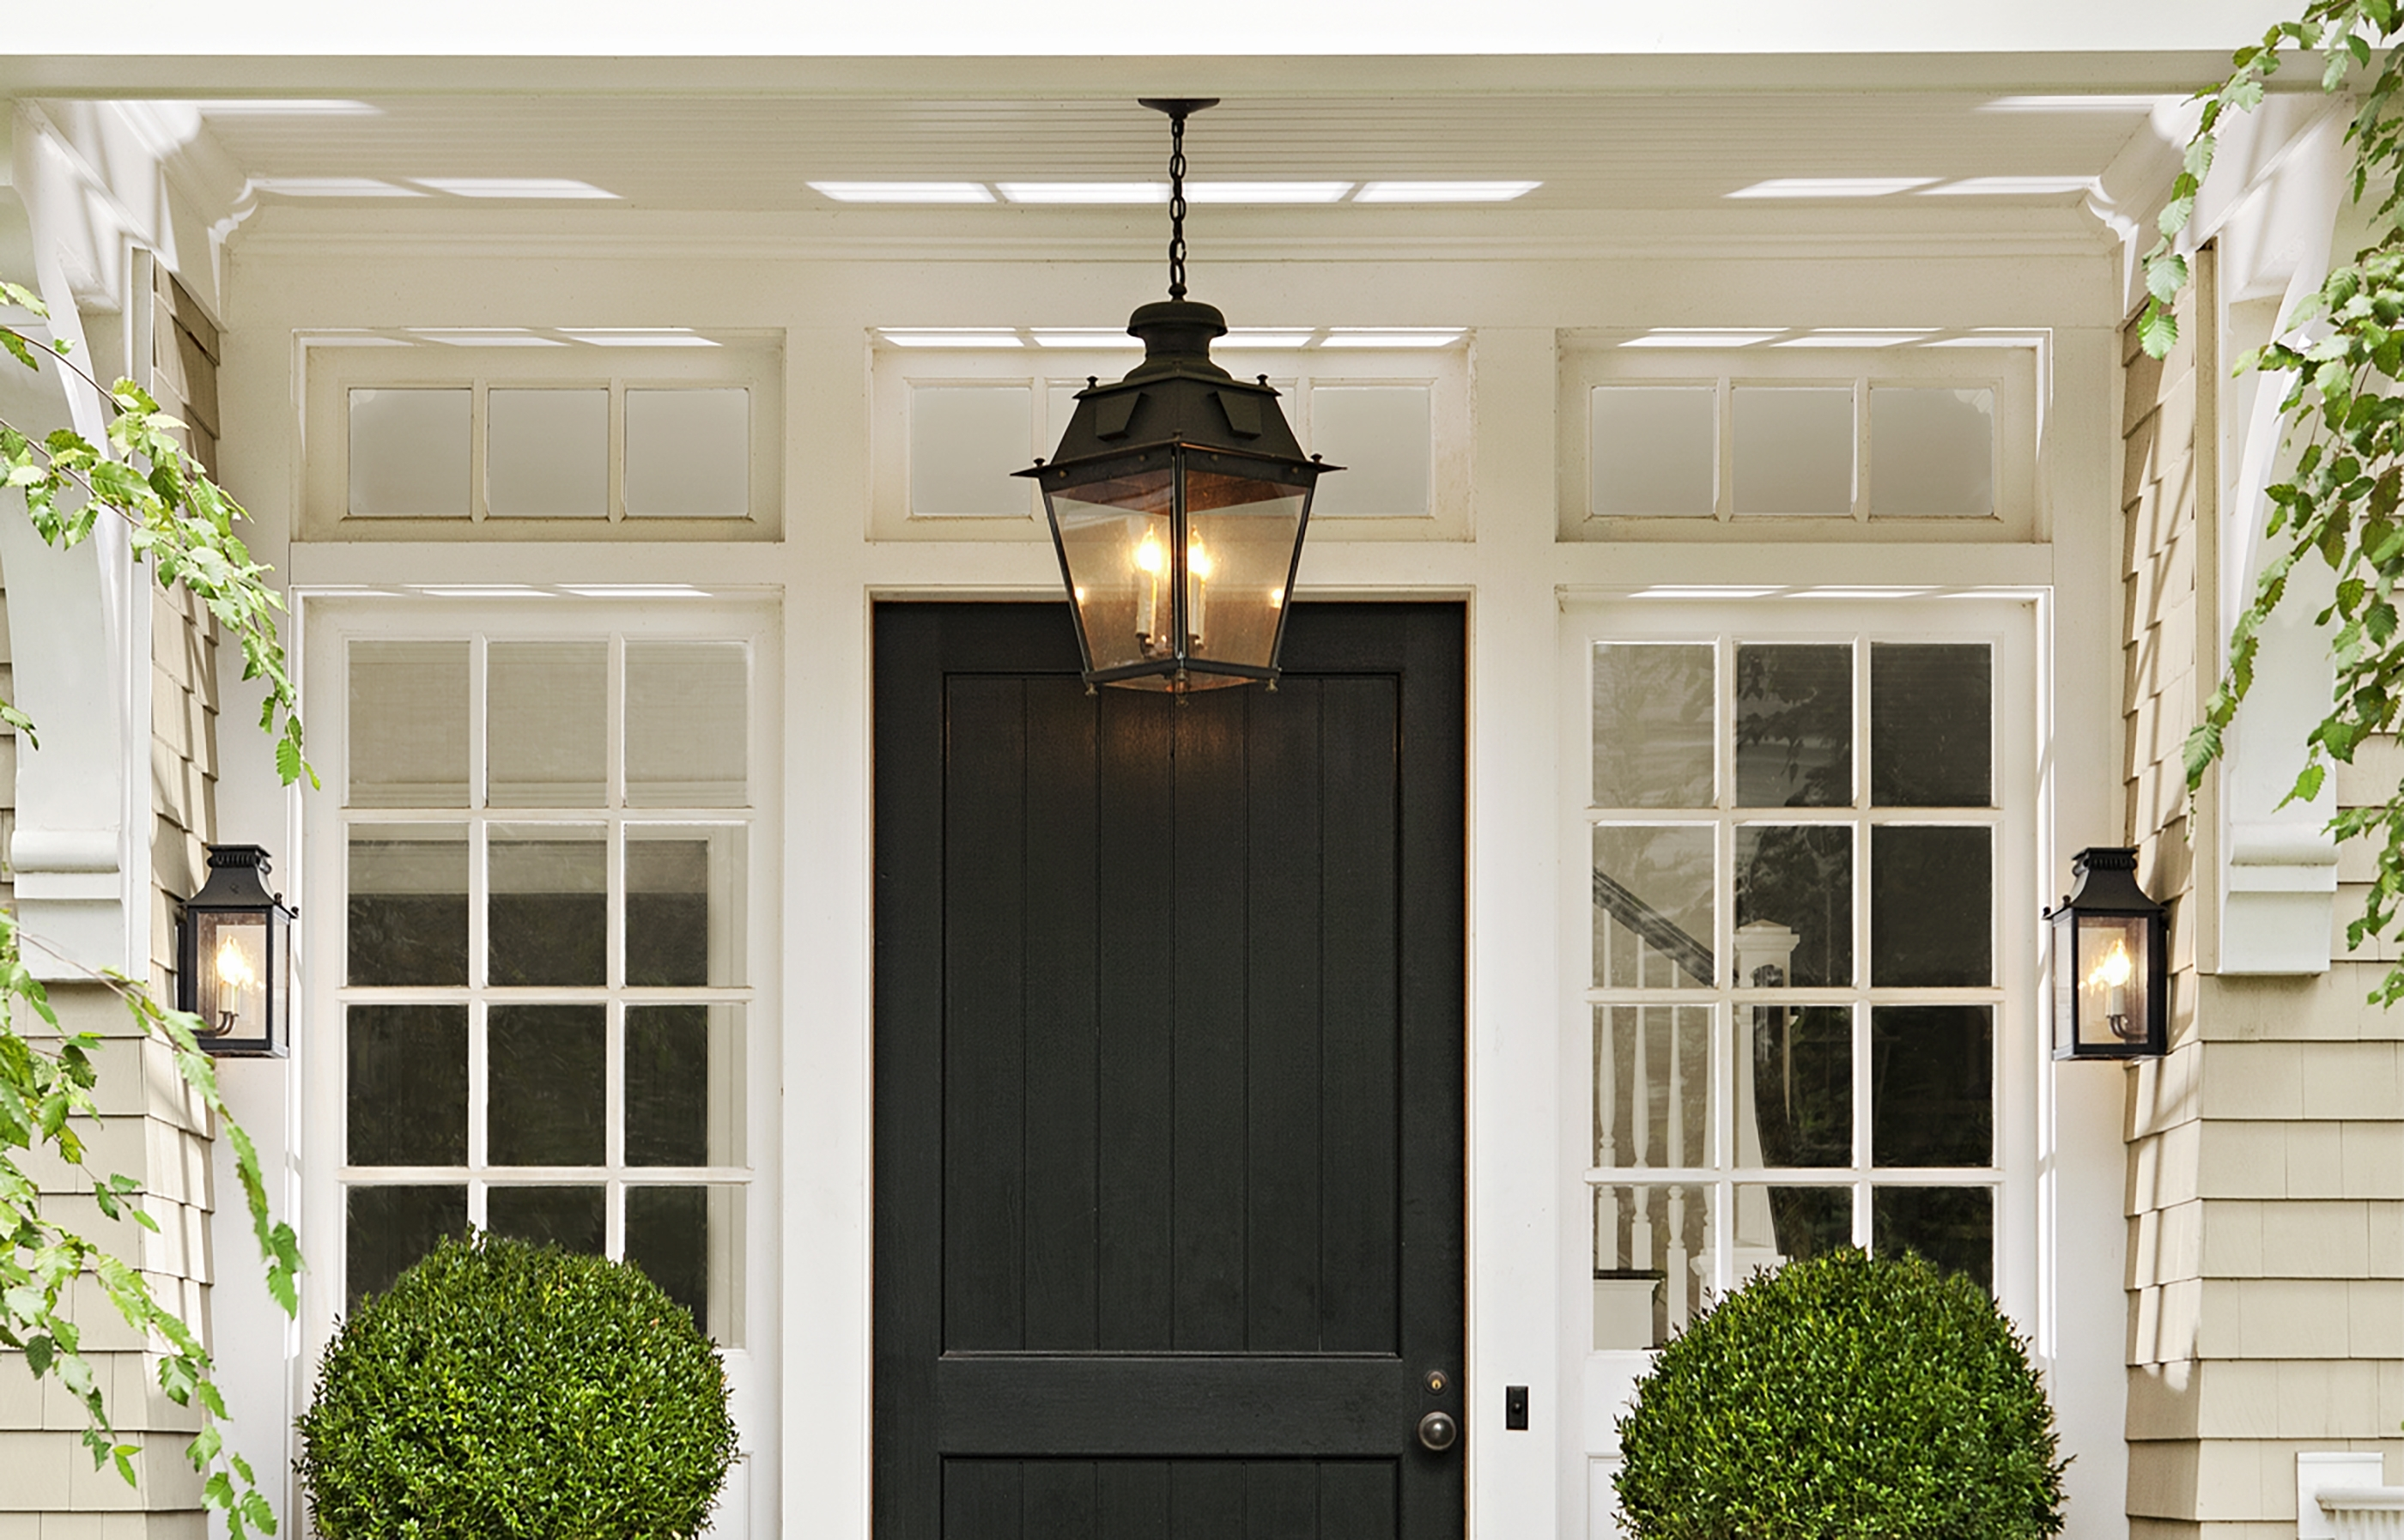 Front Porch Light Fixtures Modern Ceiling Lowes – Teamns For Best And Newest Ceiling Outdoor Lights For Front Porch (View 3 of 20)